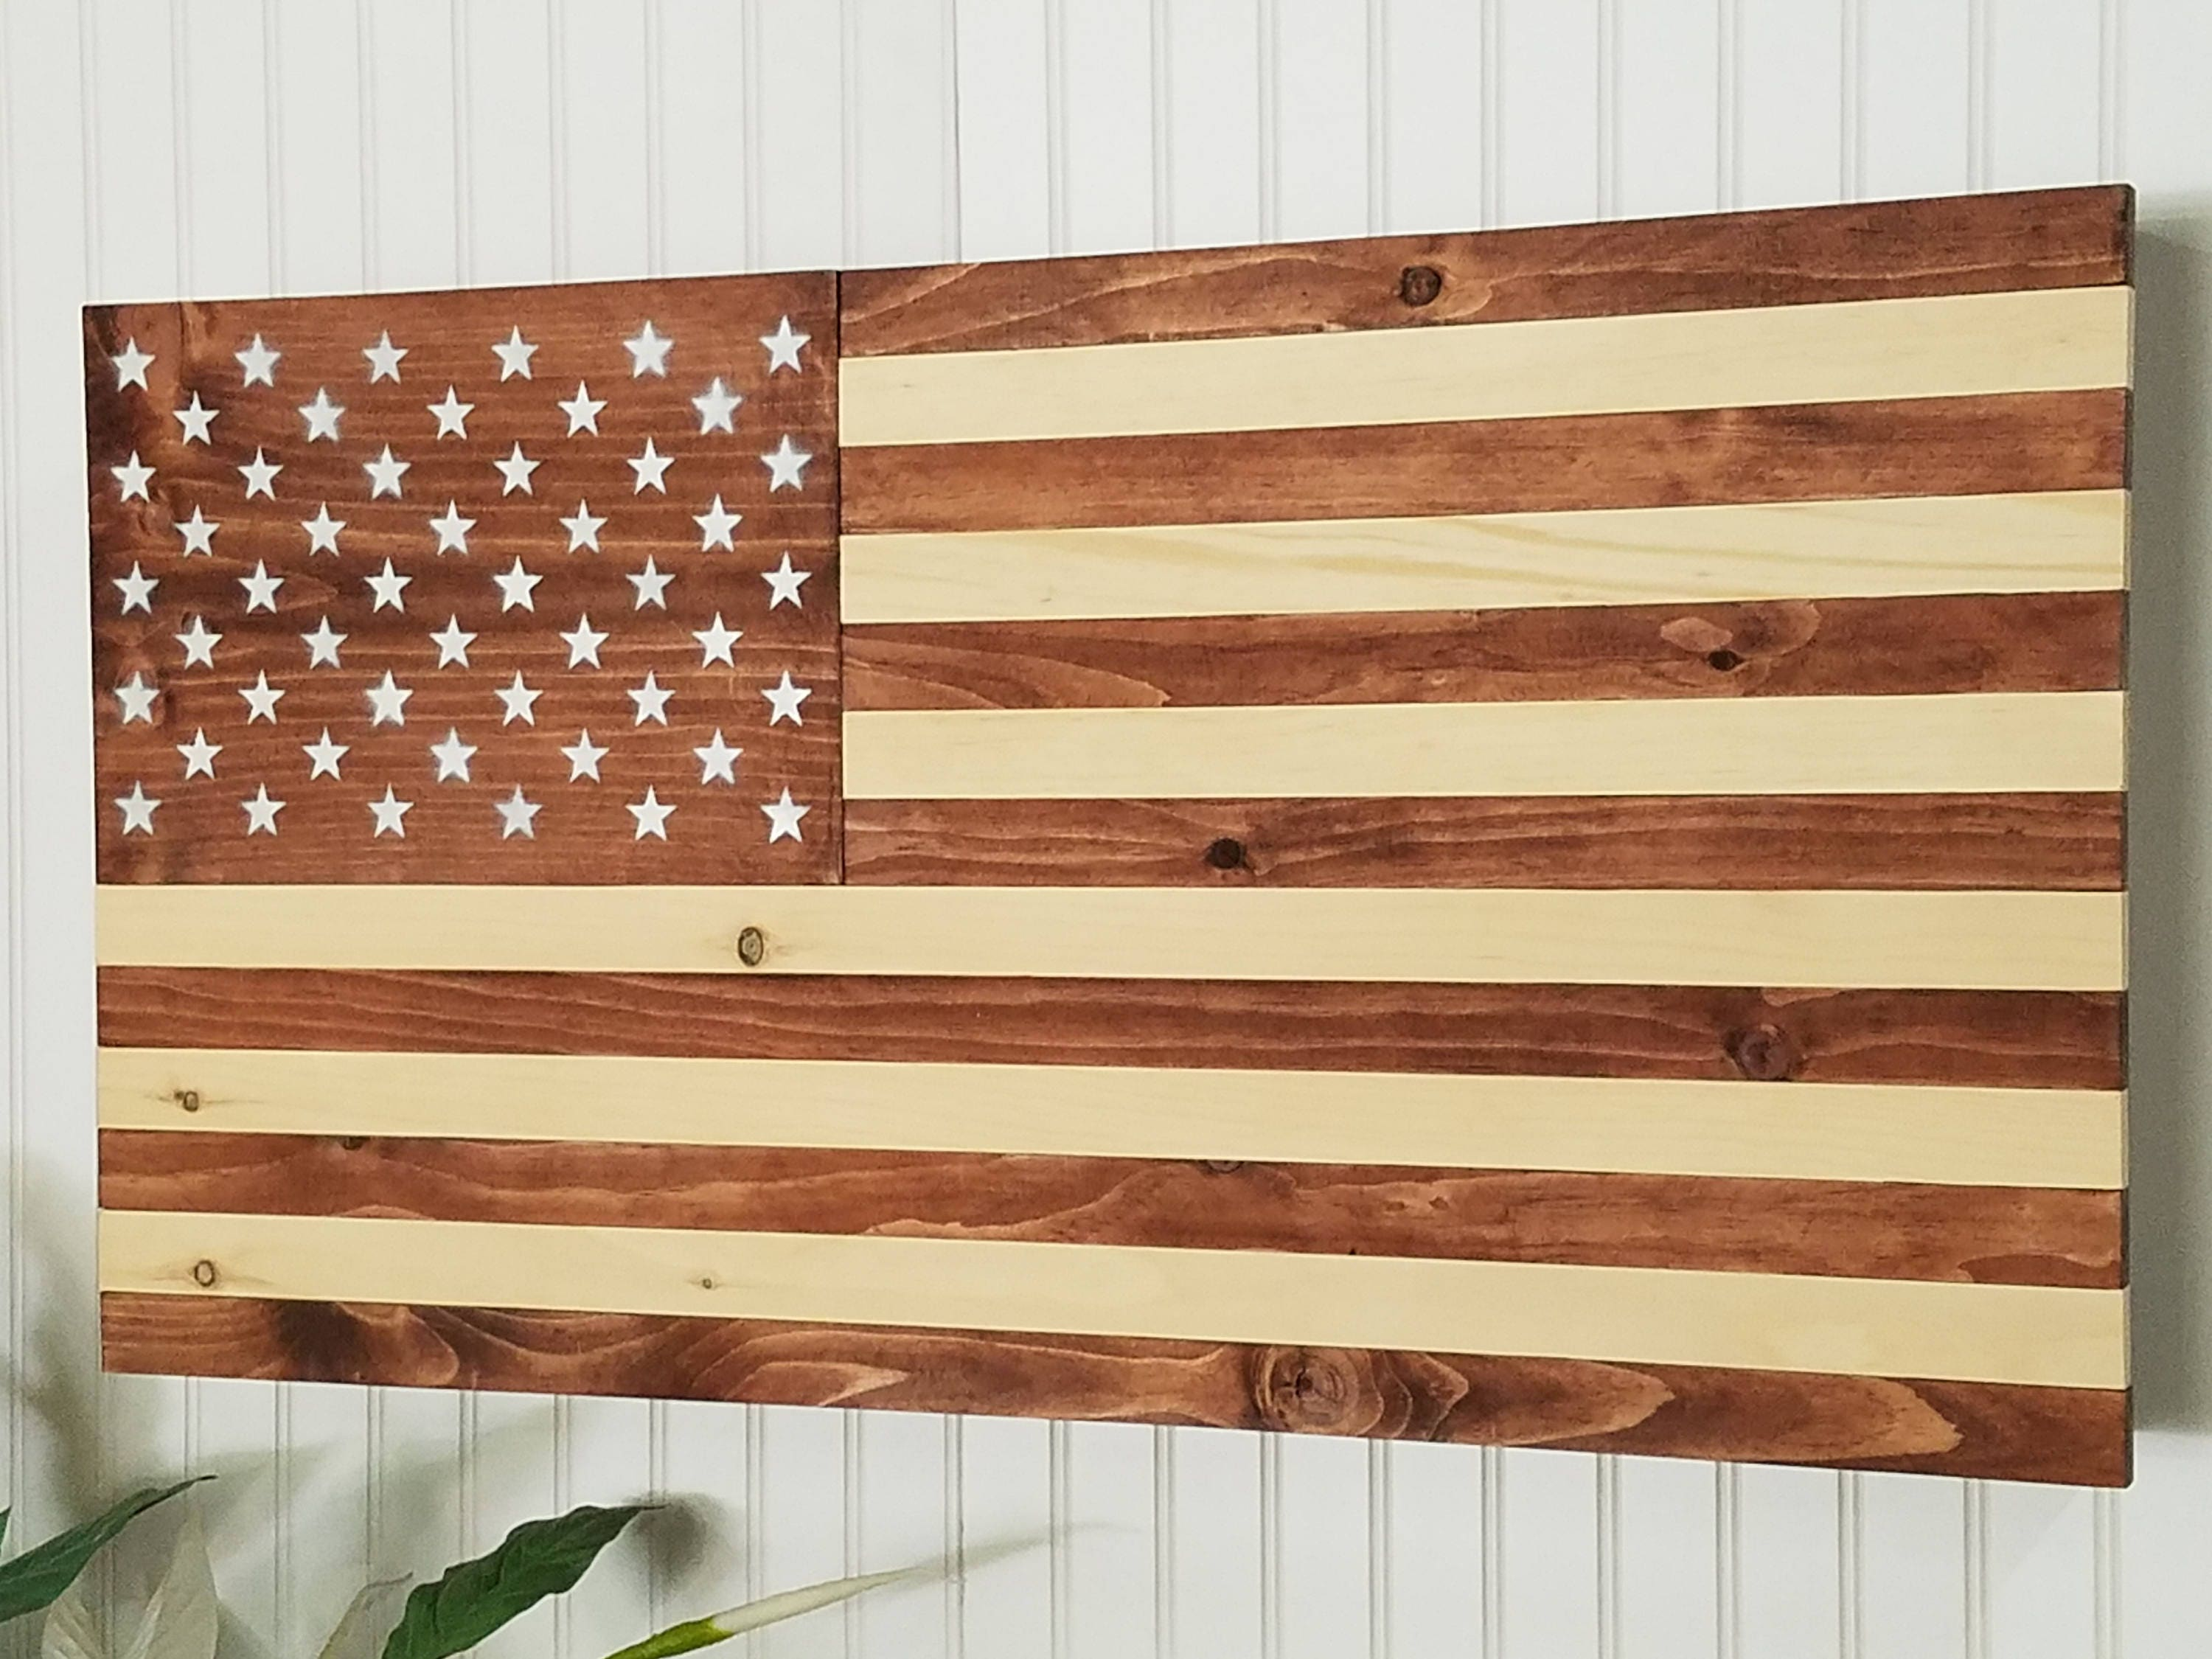 American Flag Wooden Concealment Furniture Compartment